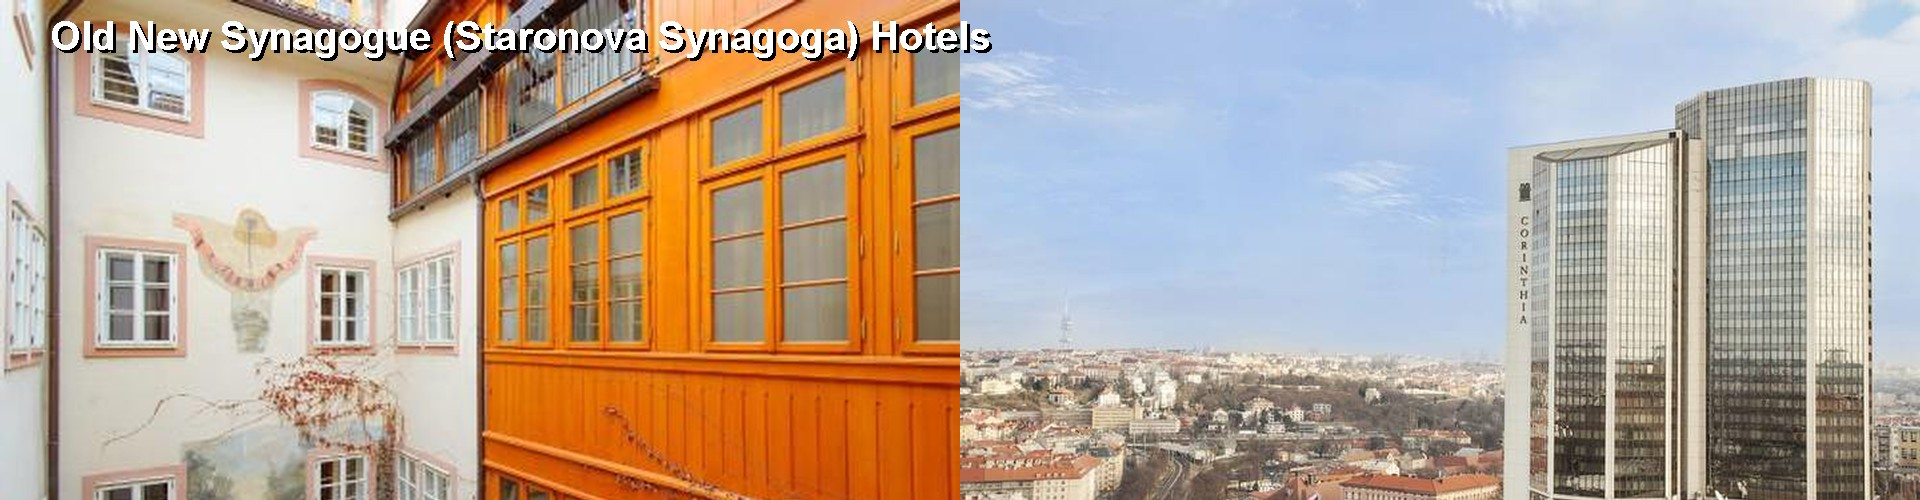 5 Best Hotels near Old New Synagogue (Staronova Synagoga)